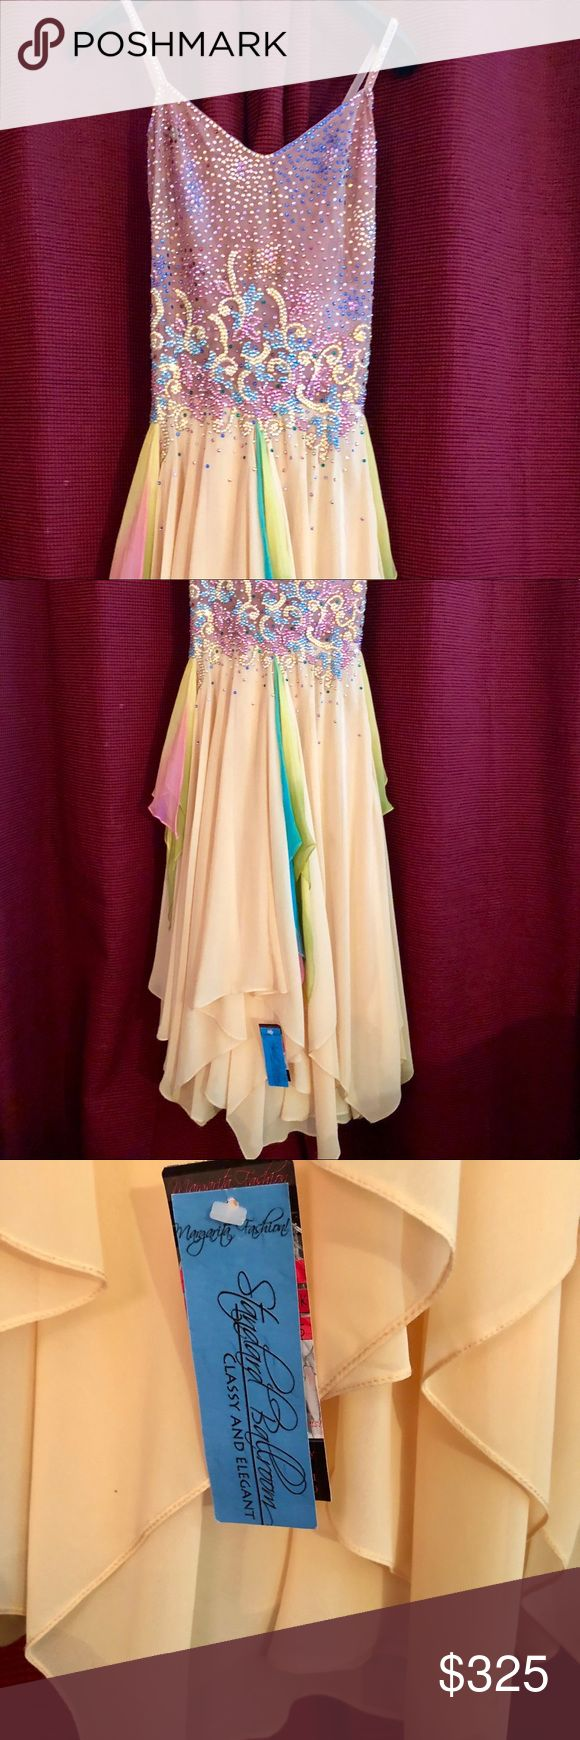 Just arrival New with tag ballroom dress to ankles This is one of a kind blast on evening dress yellow pink stunning sequence top spaghetti straps lined with a skin tone net bottom is beautiful layers of yellow and pink  please any question please ask Dresses Wedding